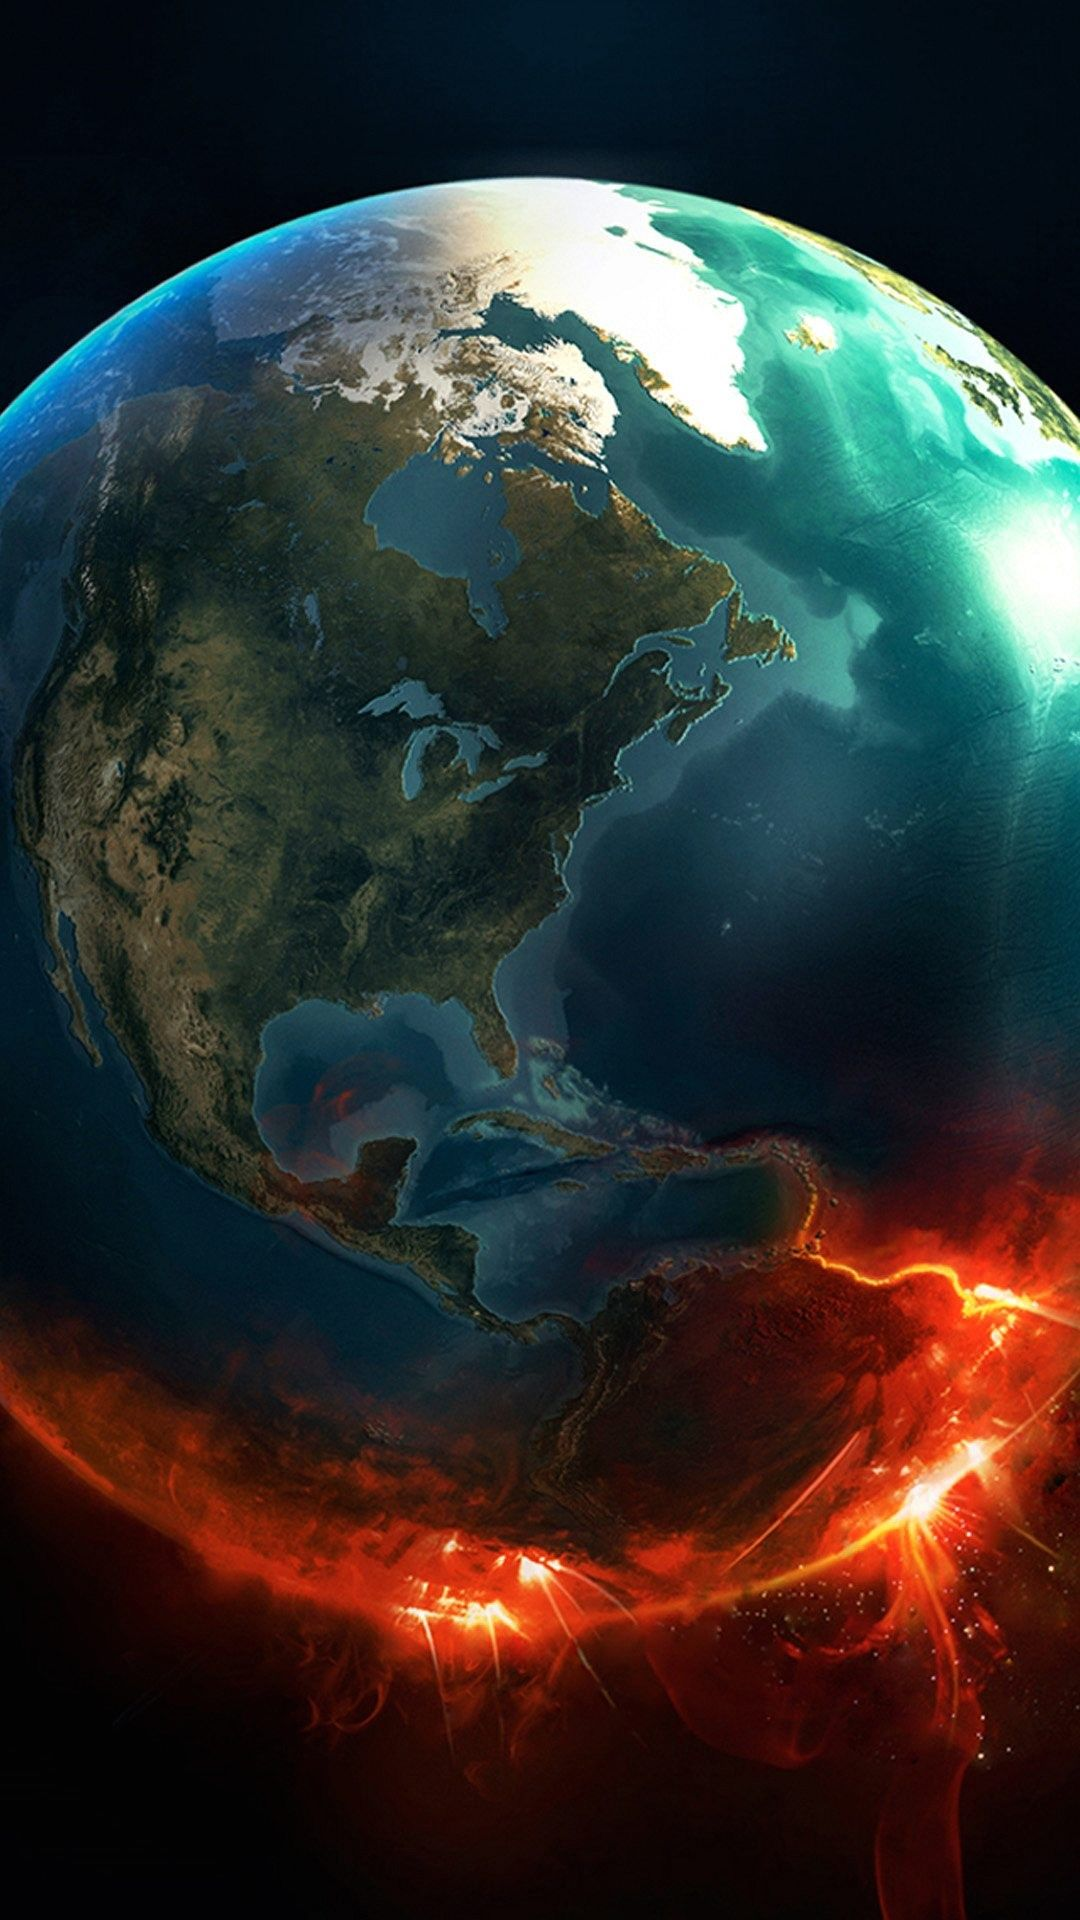 Earth Exploding 1080 X 1920 Wallpaper Vertical